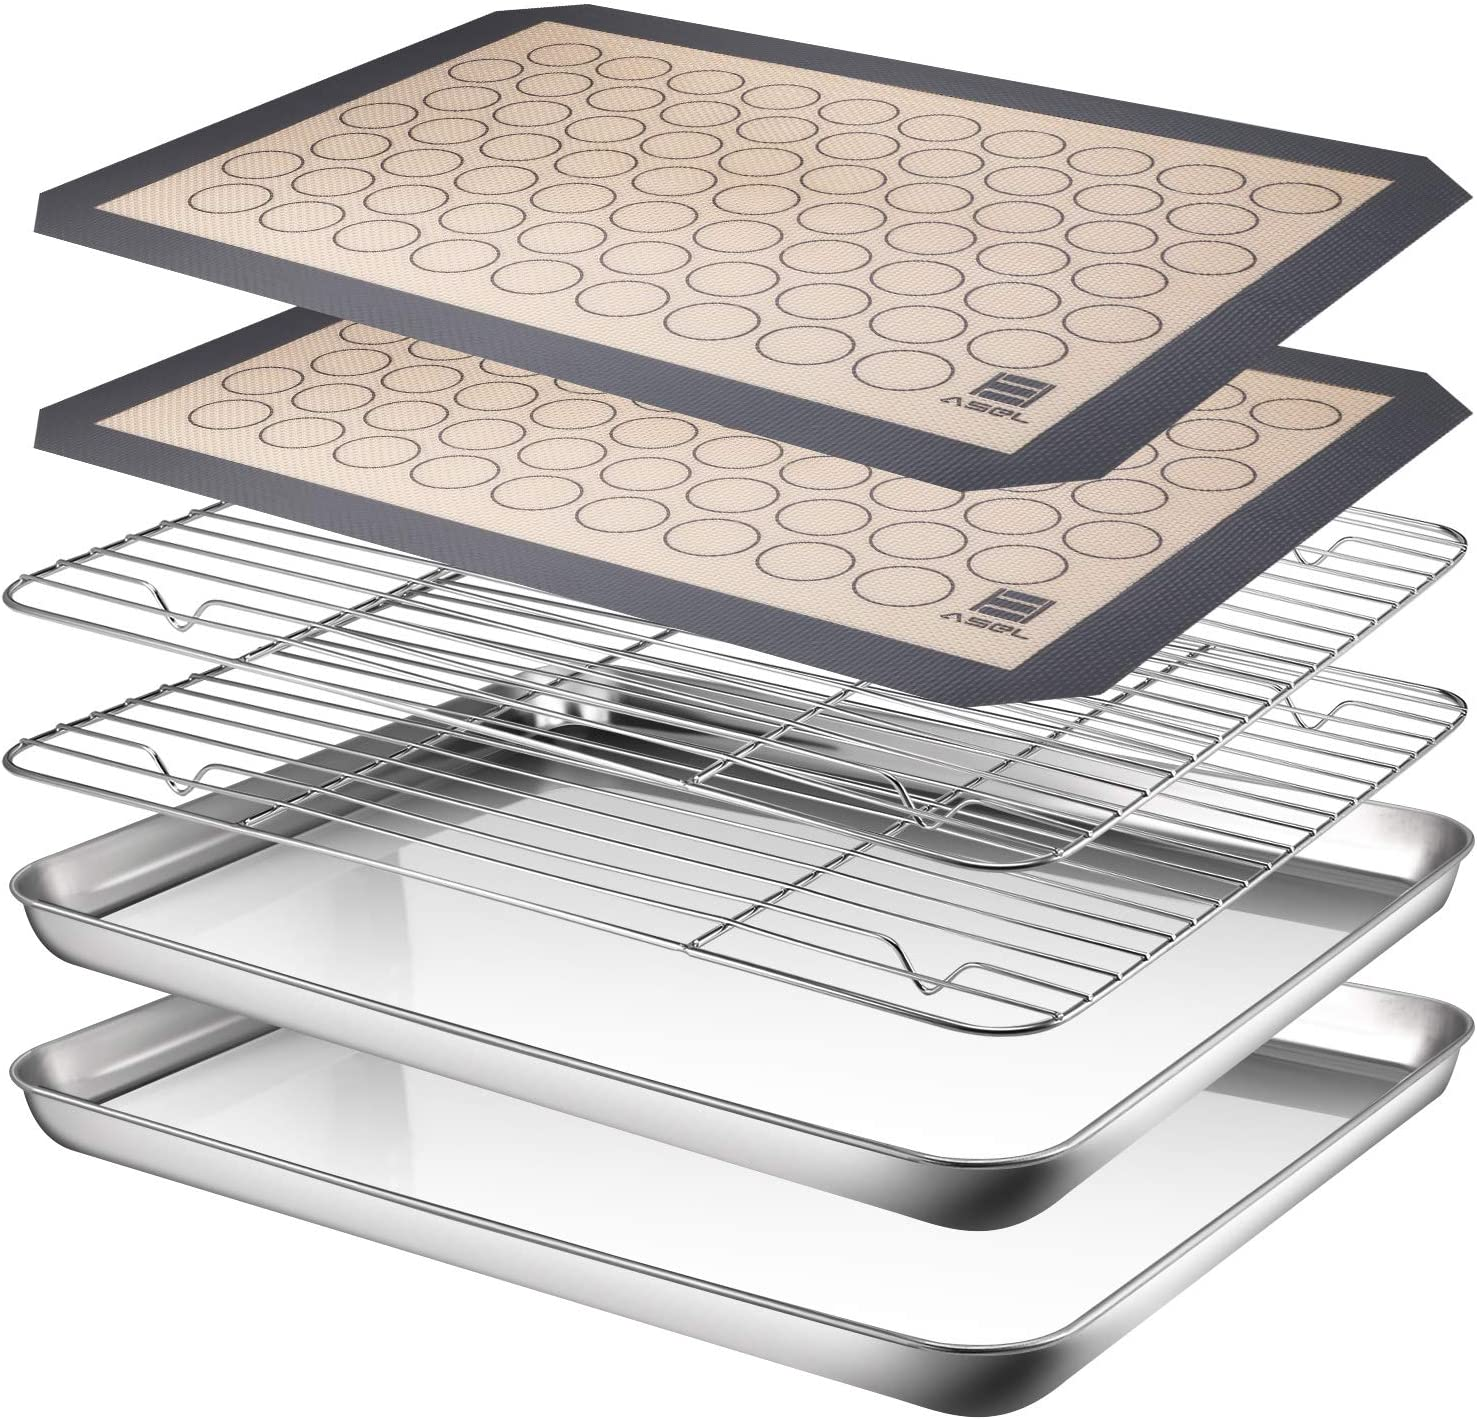 AASELM Stainless Steel Baking Pans Tray Cooling Rack with Silicone Mat, Non Toxic & Healthy, Superior Mirror Finish & Easy Clean, 2 Baking Sheets + 2 Mats + 2 Baking Rack